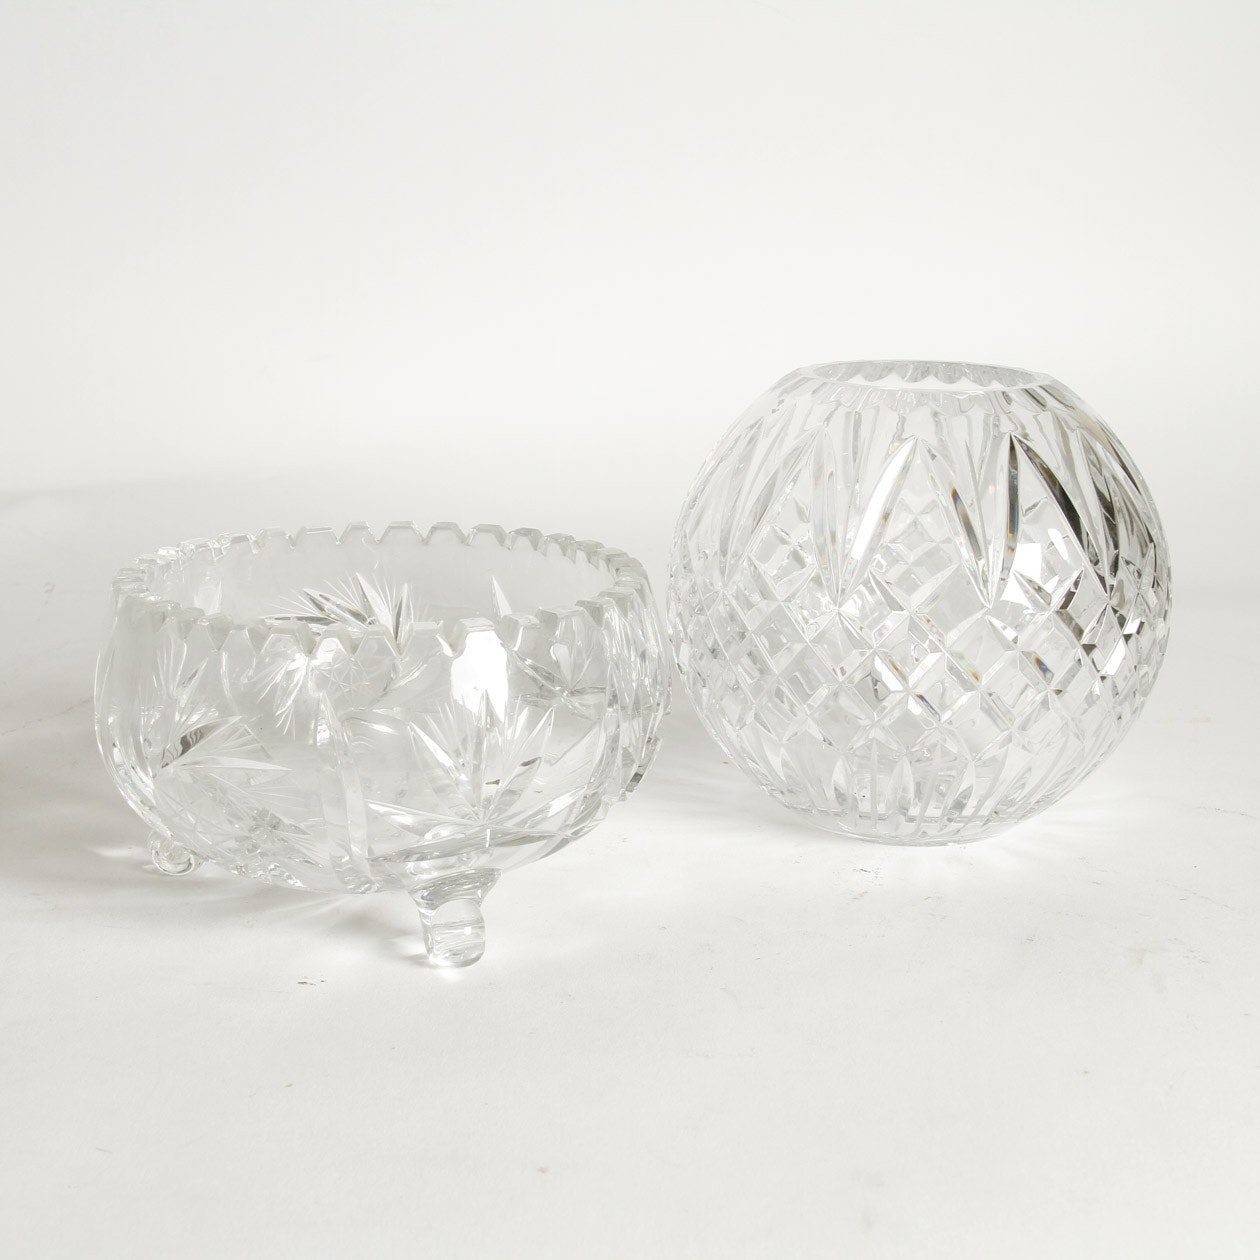 2 Pieces of Cut Crystal